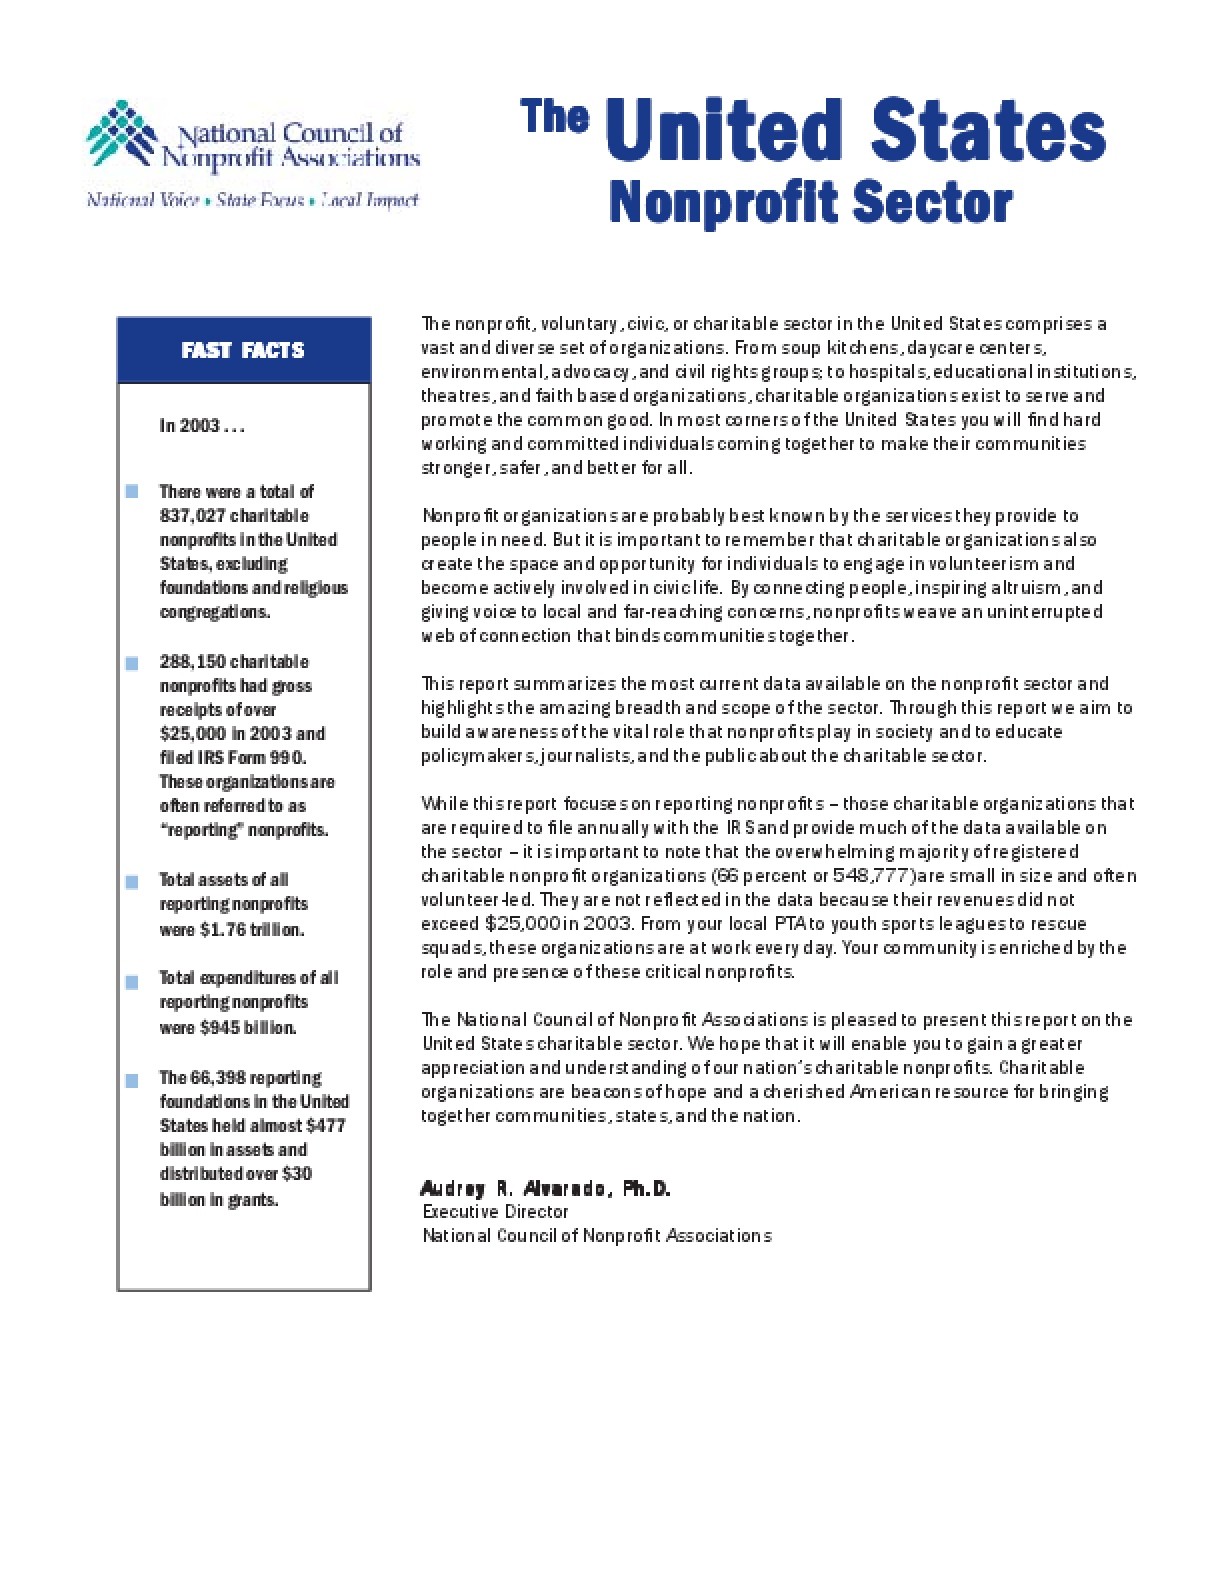 The United States Nonprofit Sector